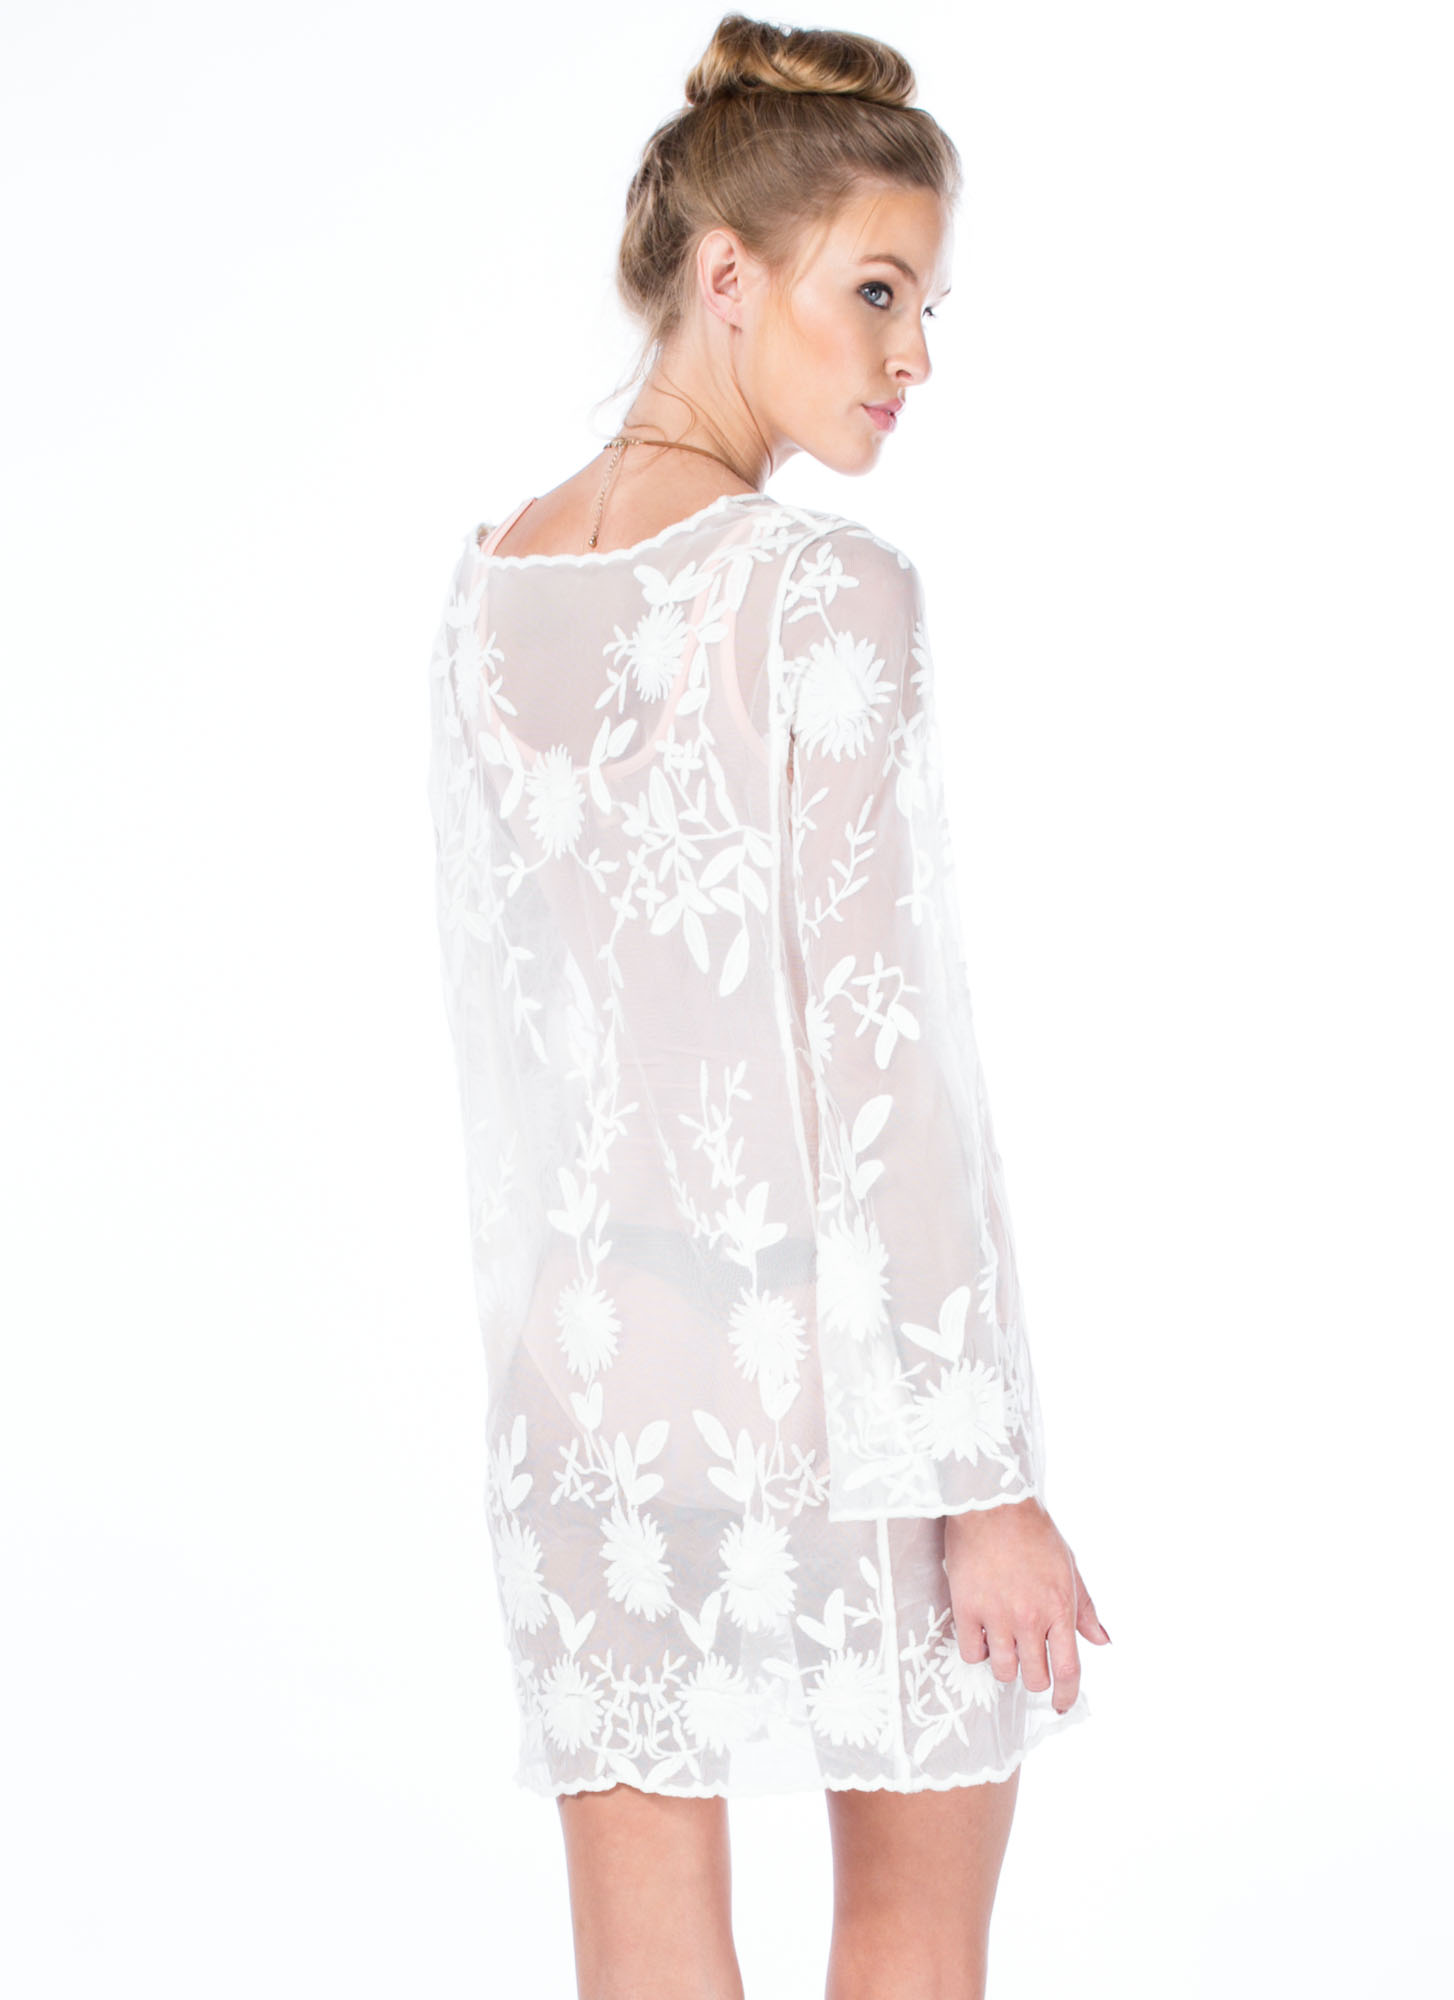 Sheer Right Through U Embroidered Dress IVORY